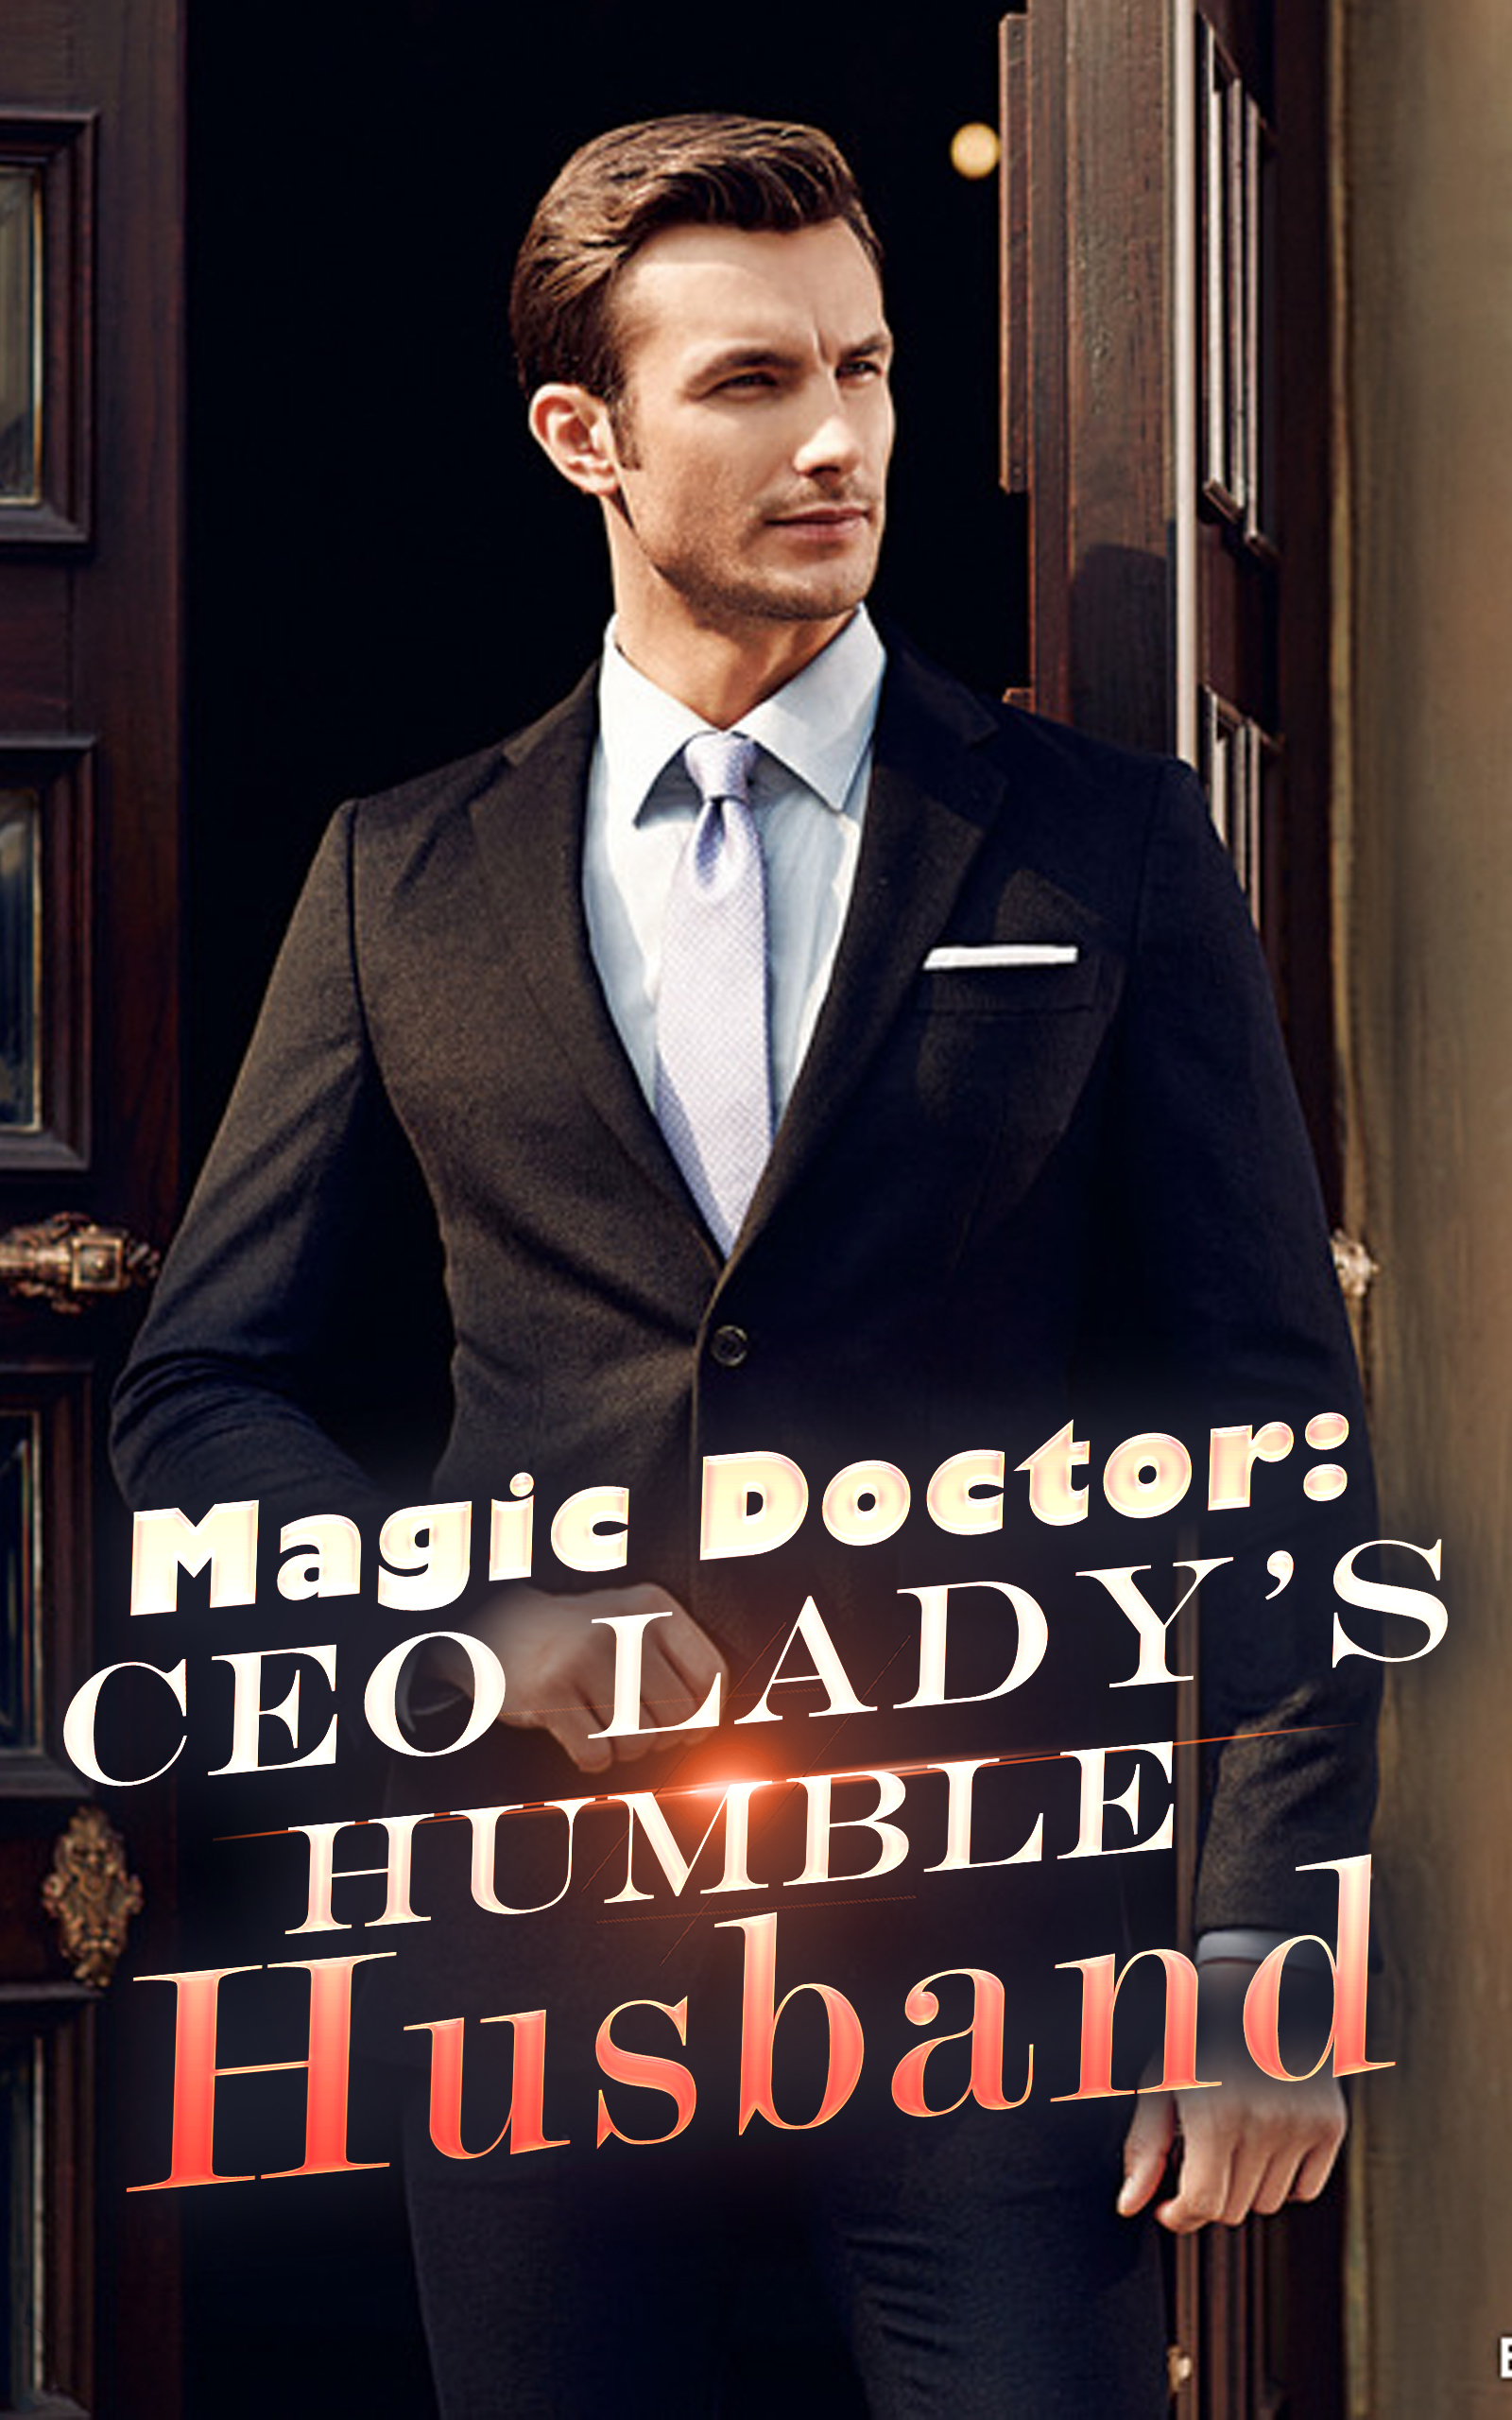 Magic Doctor: CEO Lady's Humble Husband